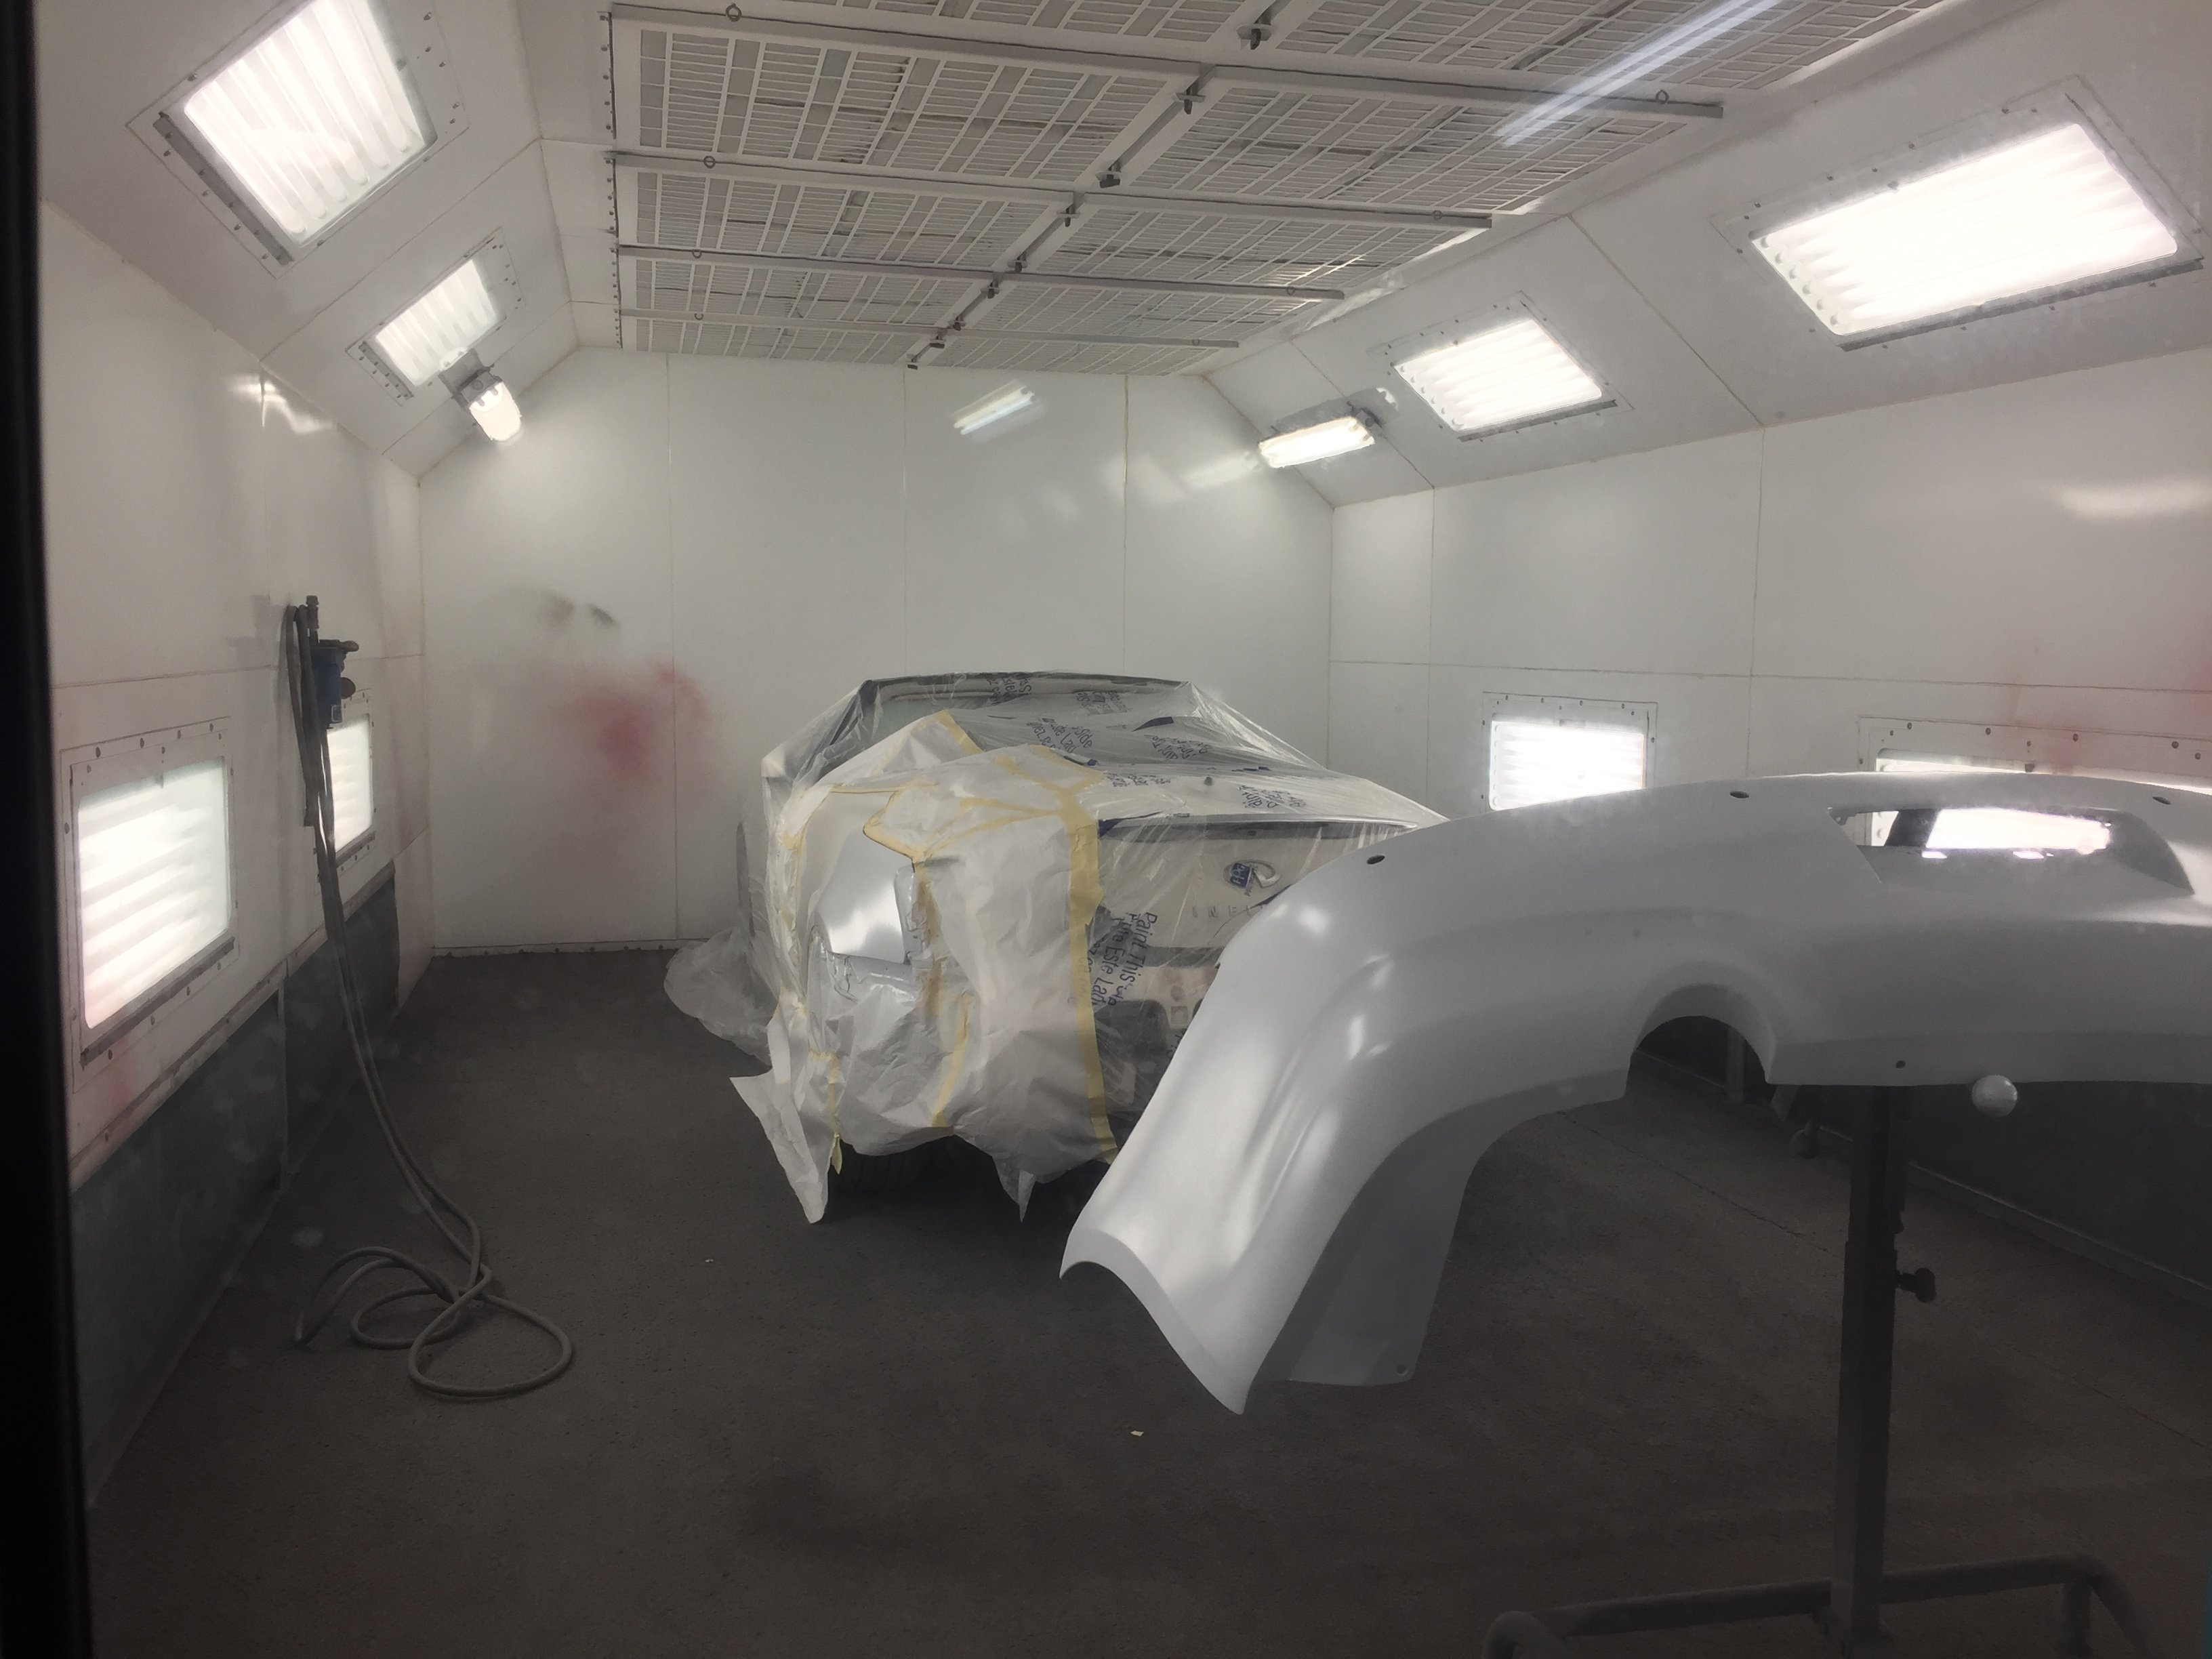 inside of painting bay, bumper with primer, rest of car taped and sheeted in background